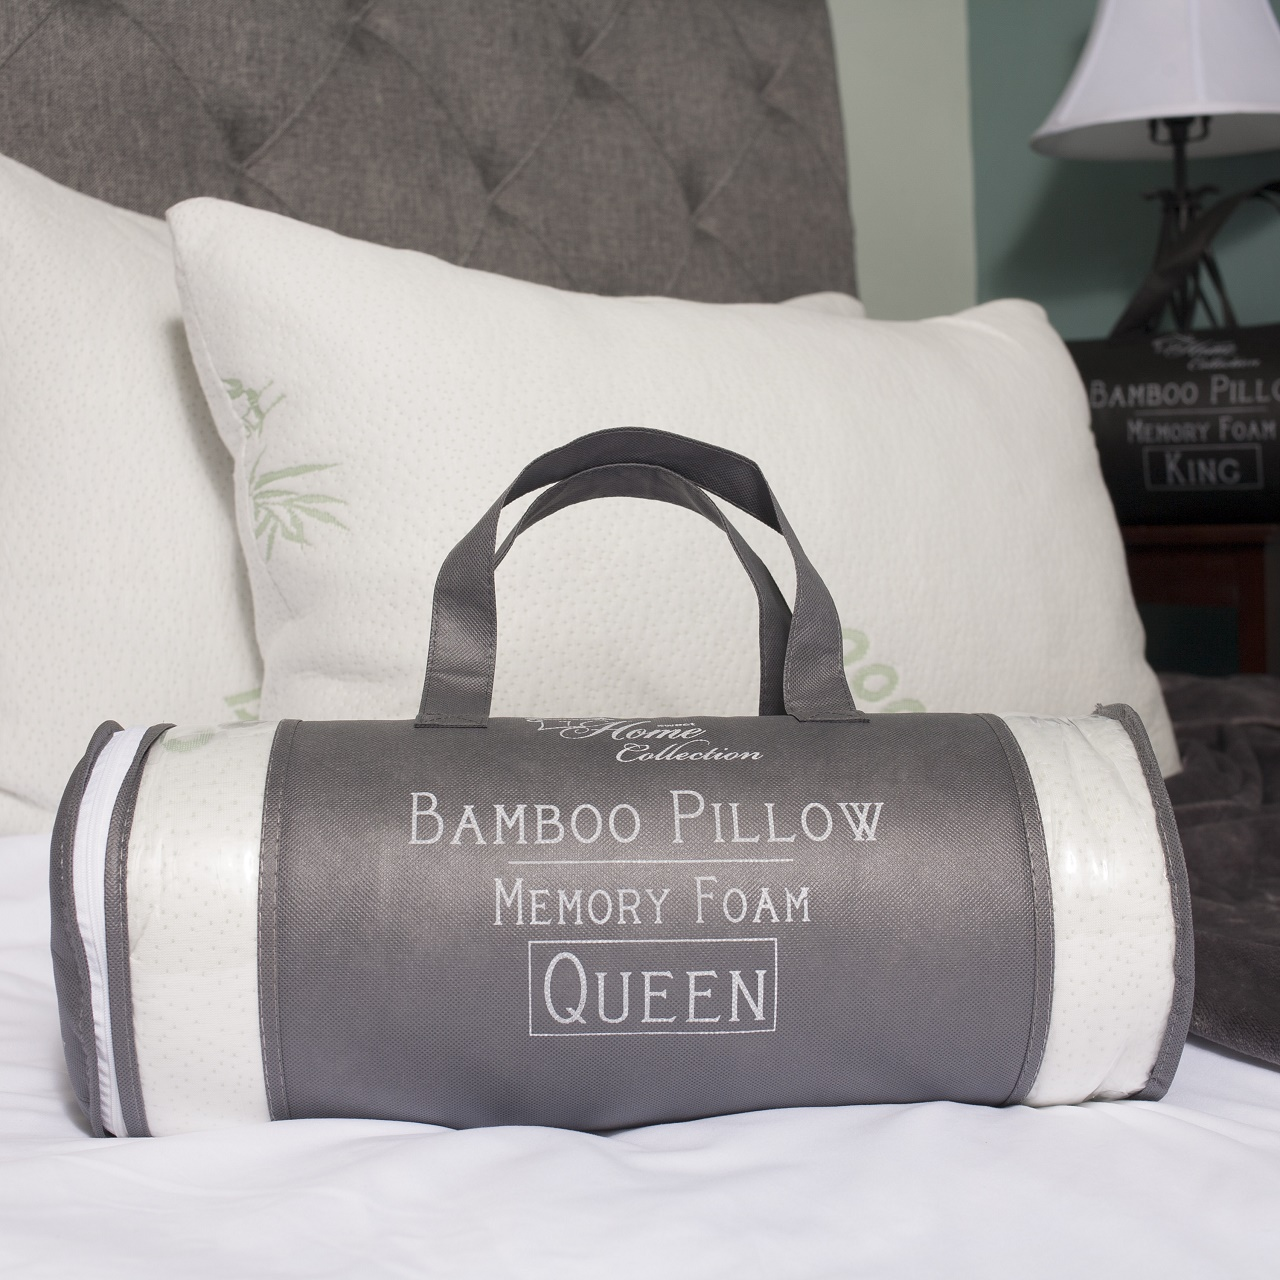 Bamboo Pillow Shredded Memory Foam by Home Comfort